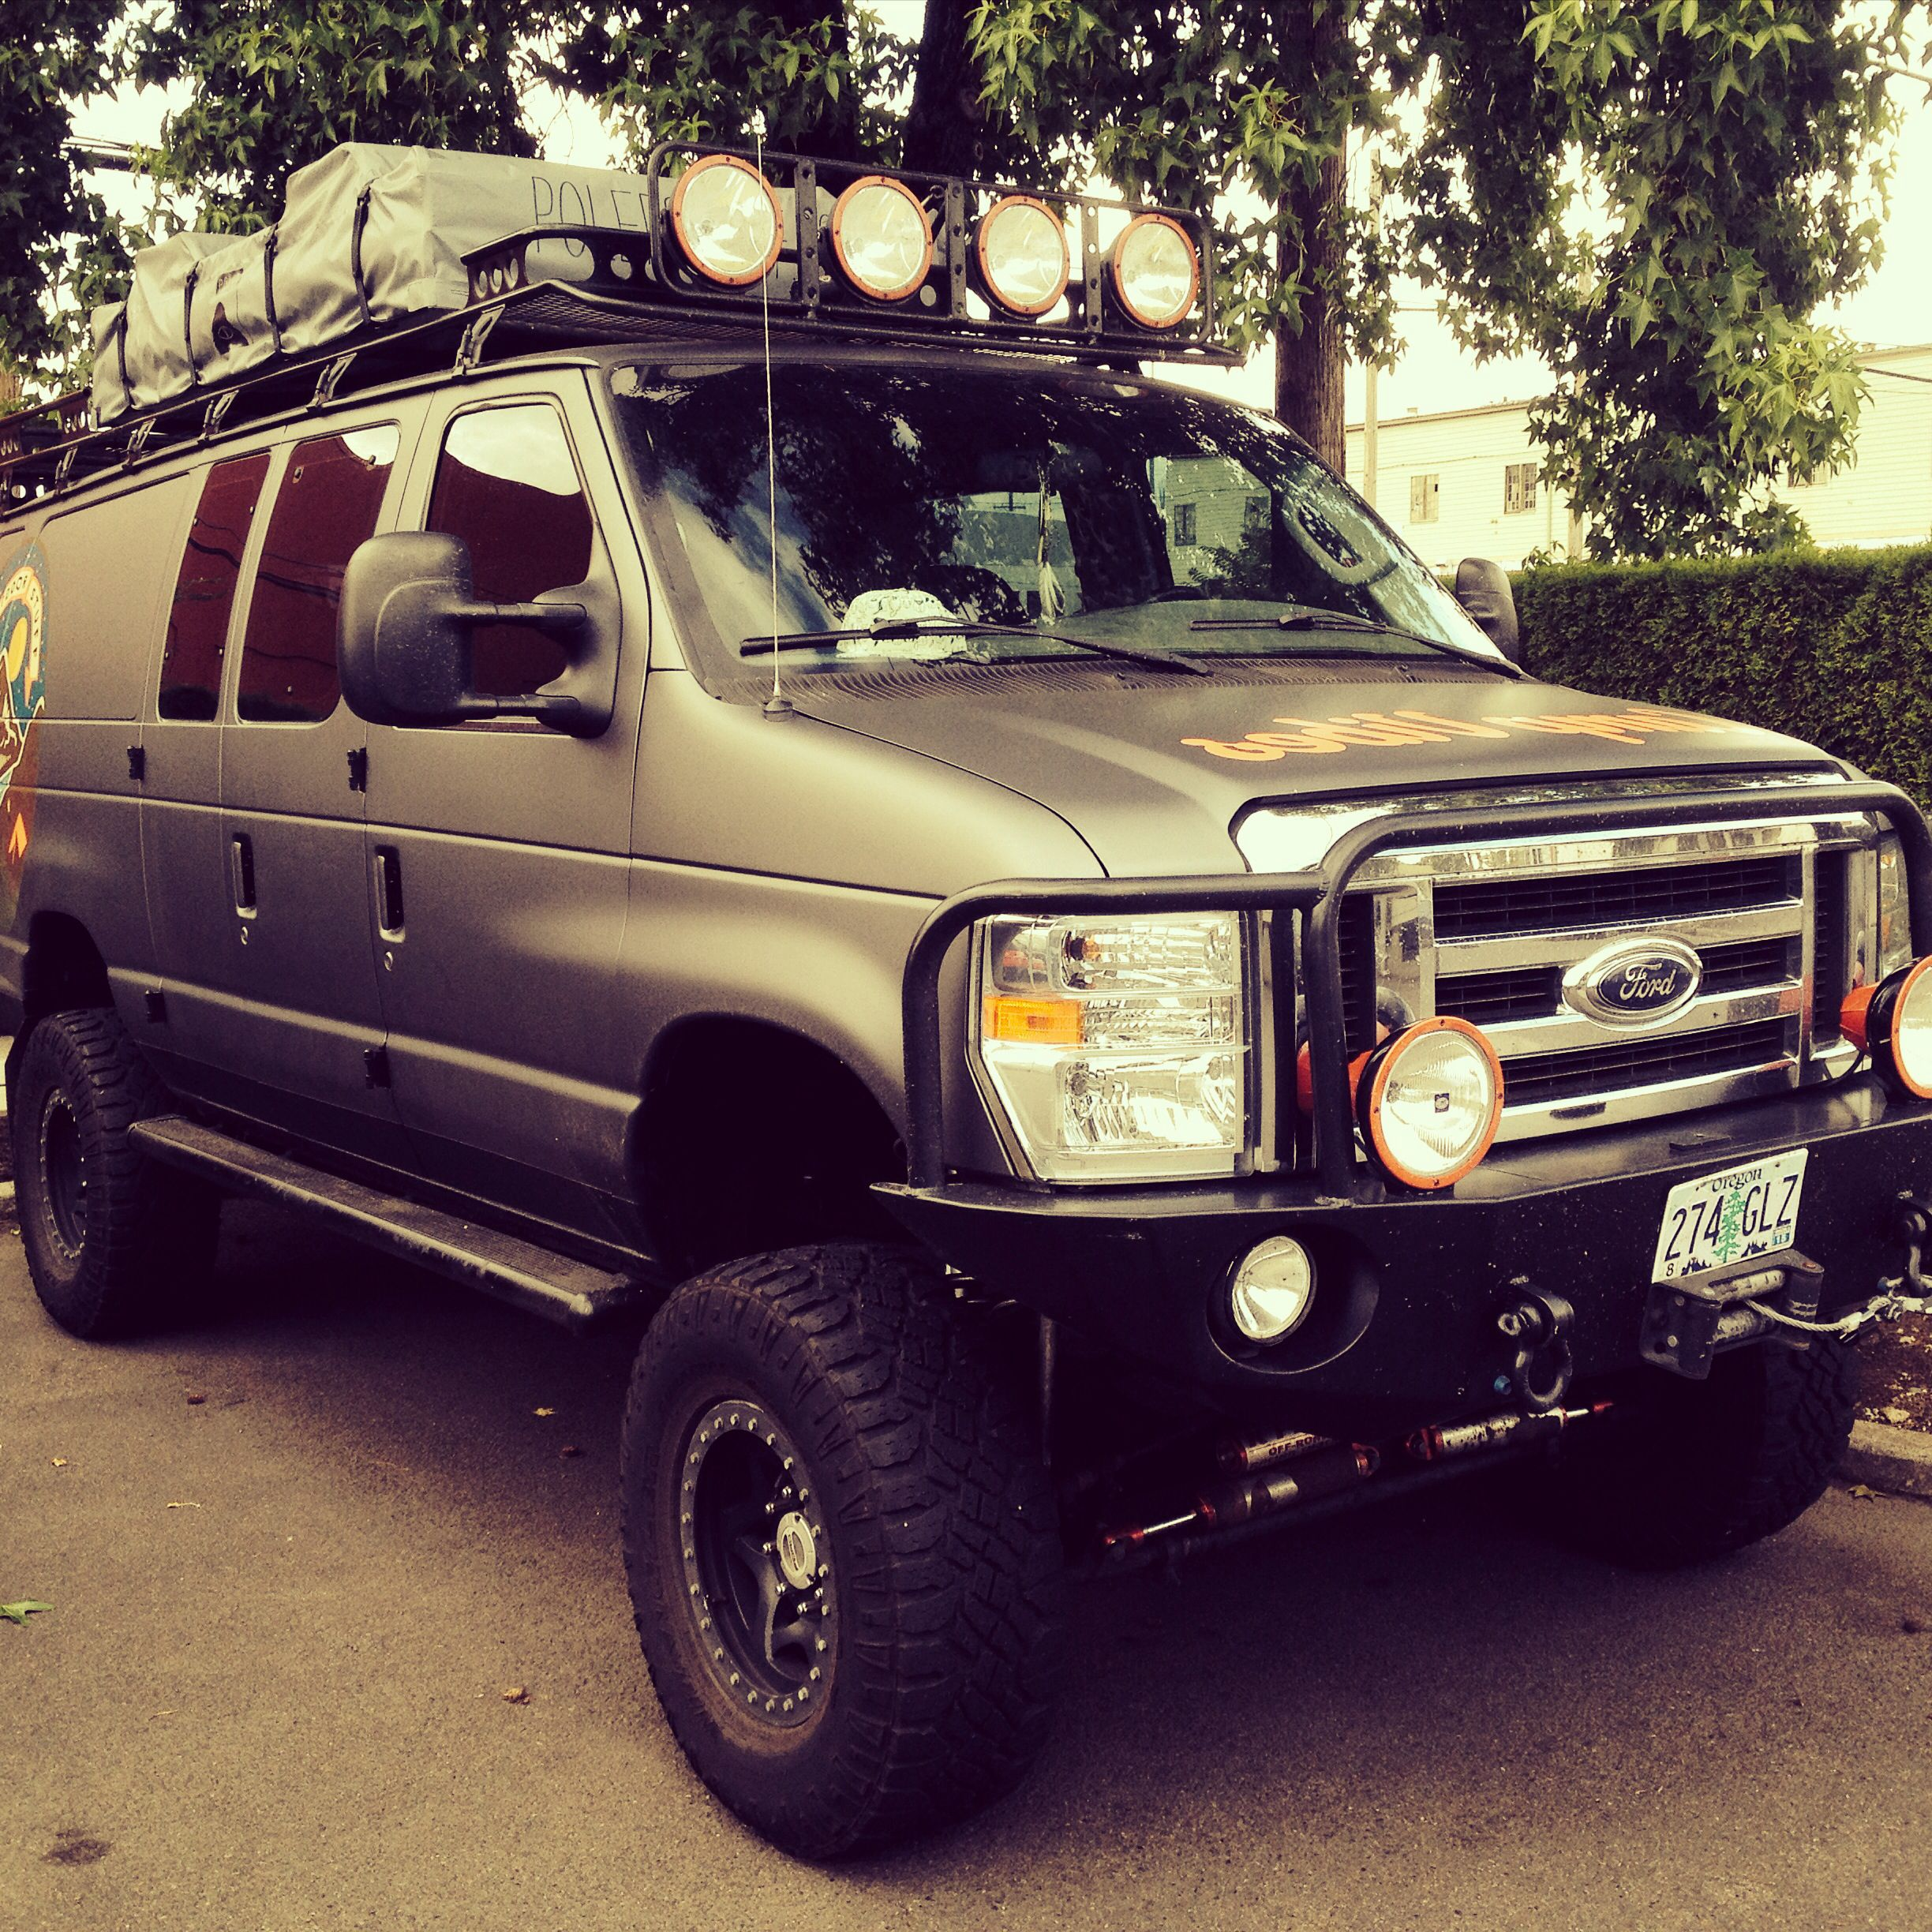 Sportsmobile With Aluminess Front Bumper And Roof Rack